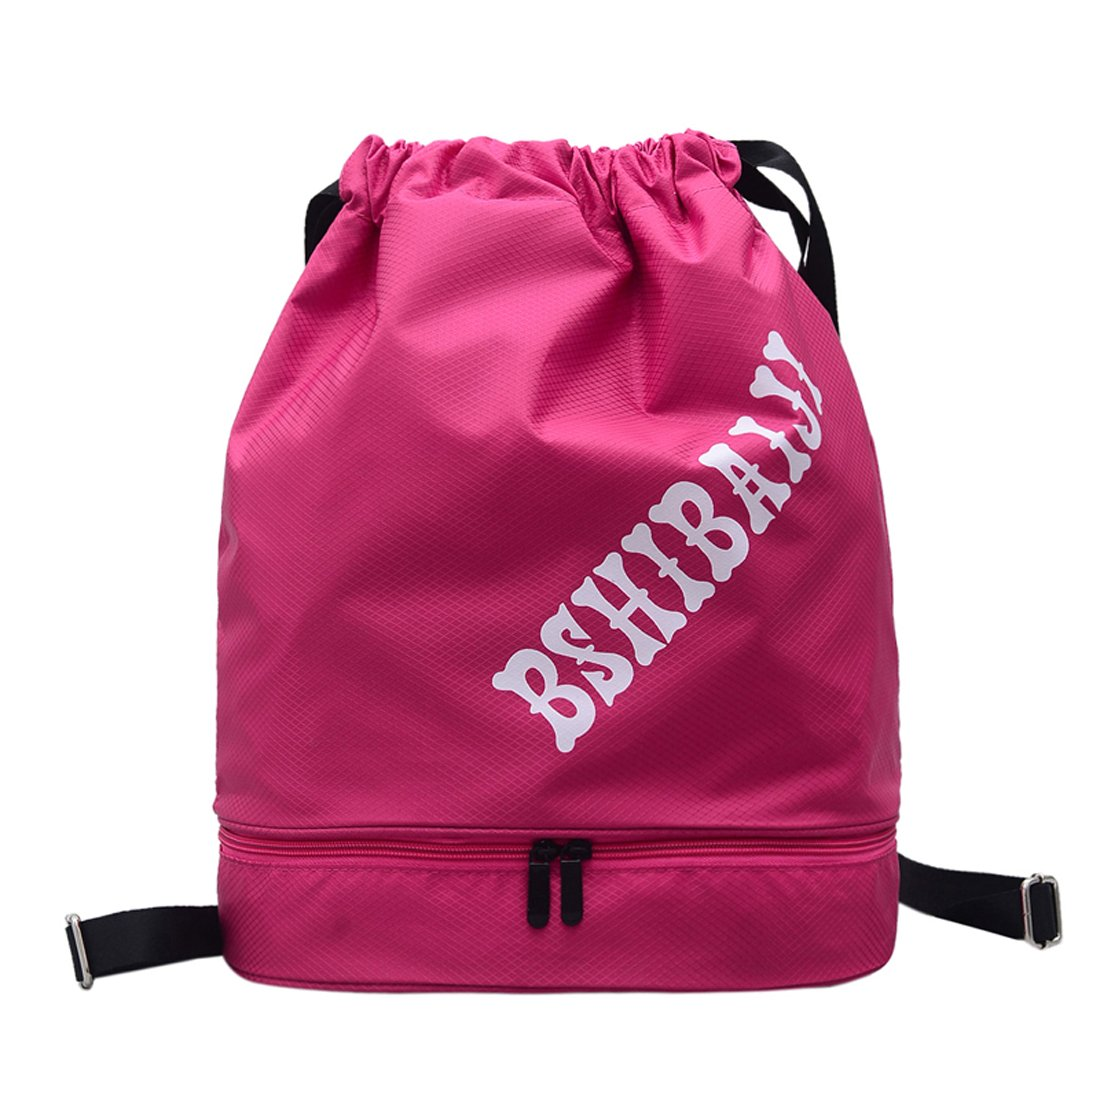 Dry Wet Separated Swimming Bag Drawstring Backpack Waterproof Gym Sack Sports Bag for Men and Women (Rose)